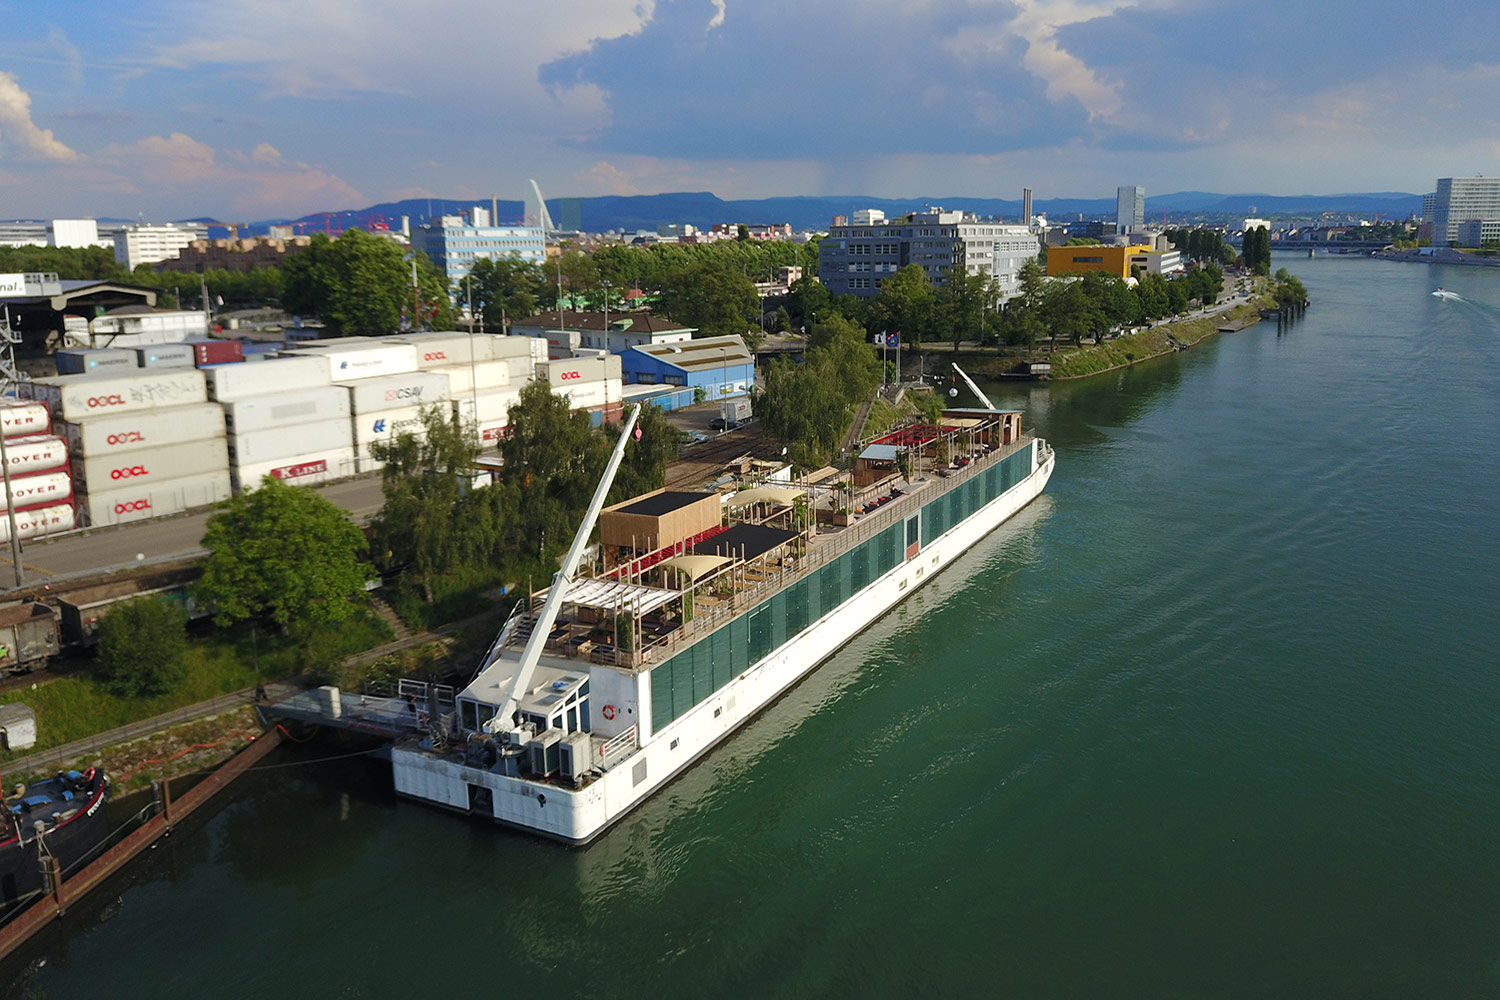 WSDG was in charge of the famous EDM nightclub Nordstern in Basel, Switzerland sound isolation, acoustics, and audio design inside the nightclub. Exterior boat on Rhine River.